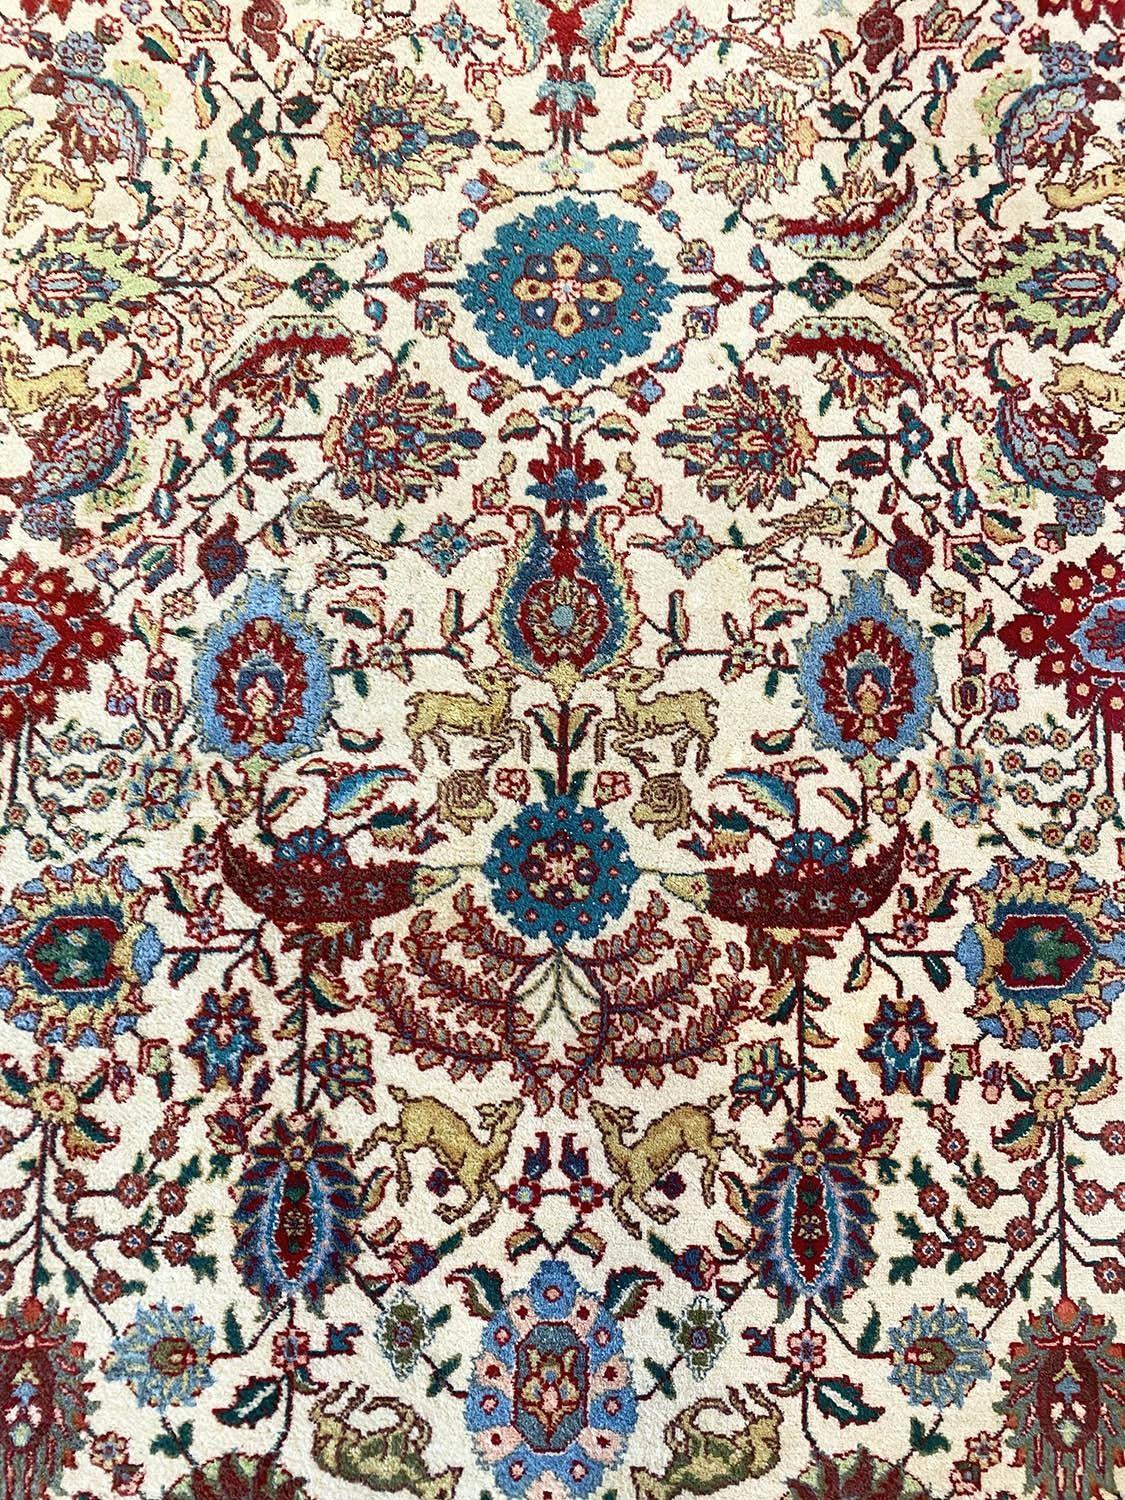 FINE PERSIAN TABRIZ CARPET, 387cm x 288cm, all over palmette and vine design with deer motifs within - Image 2 of 5